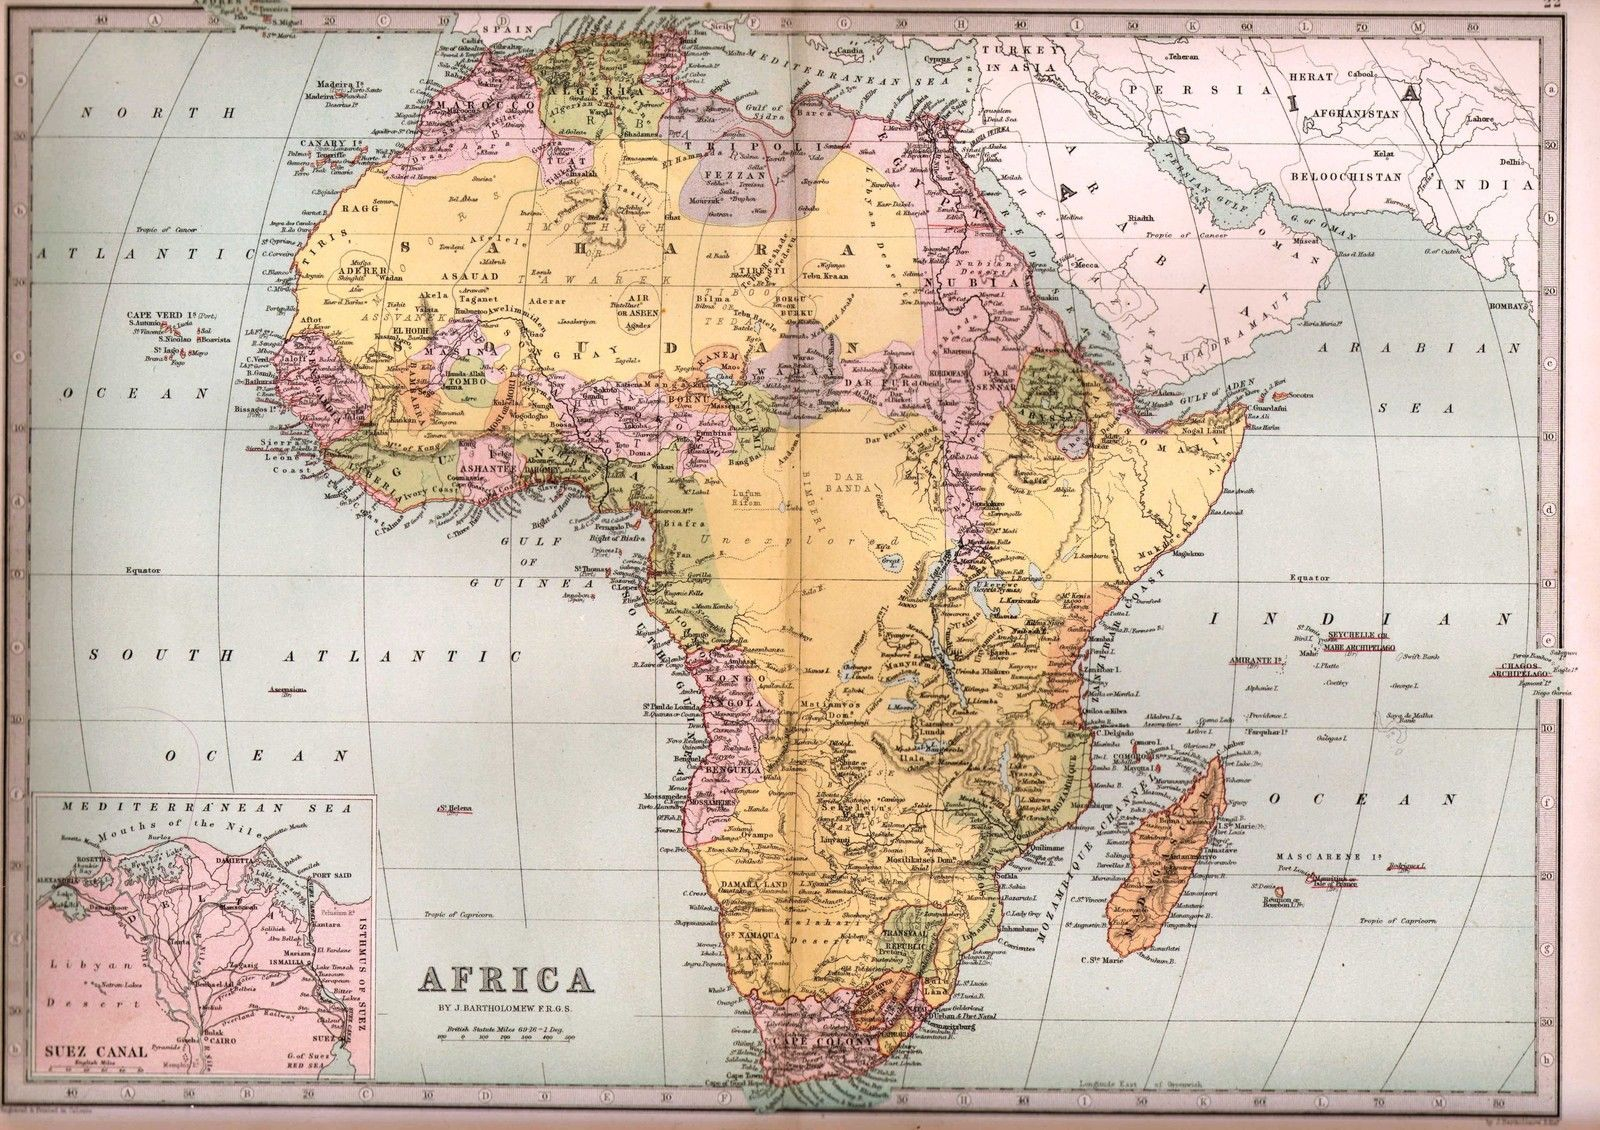 Suez Canal On Africa Map.1875 Victorian Map Africa Suez Canal Sahara Transvaal Cape